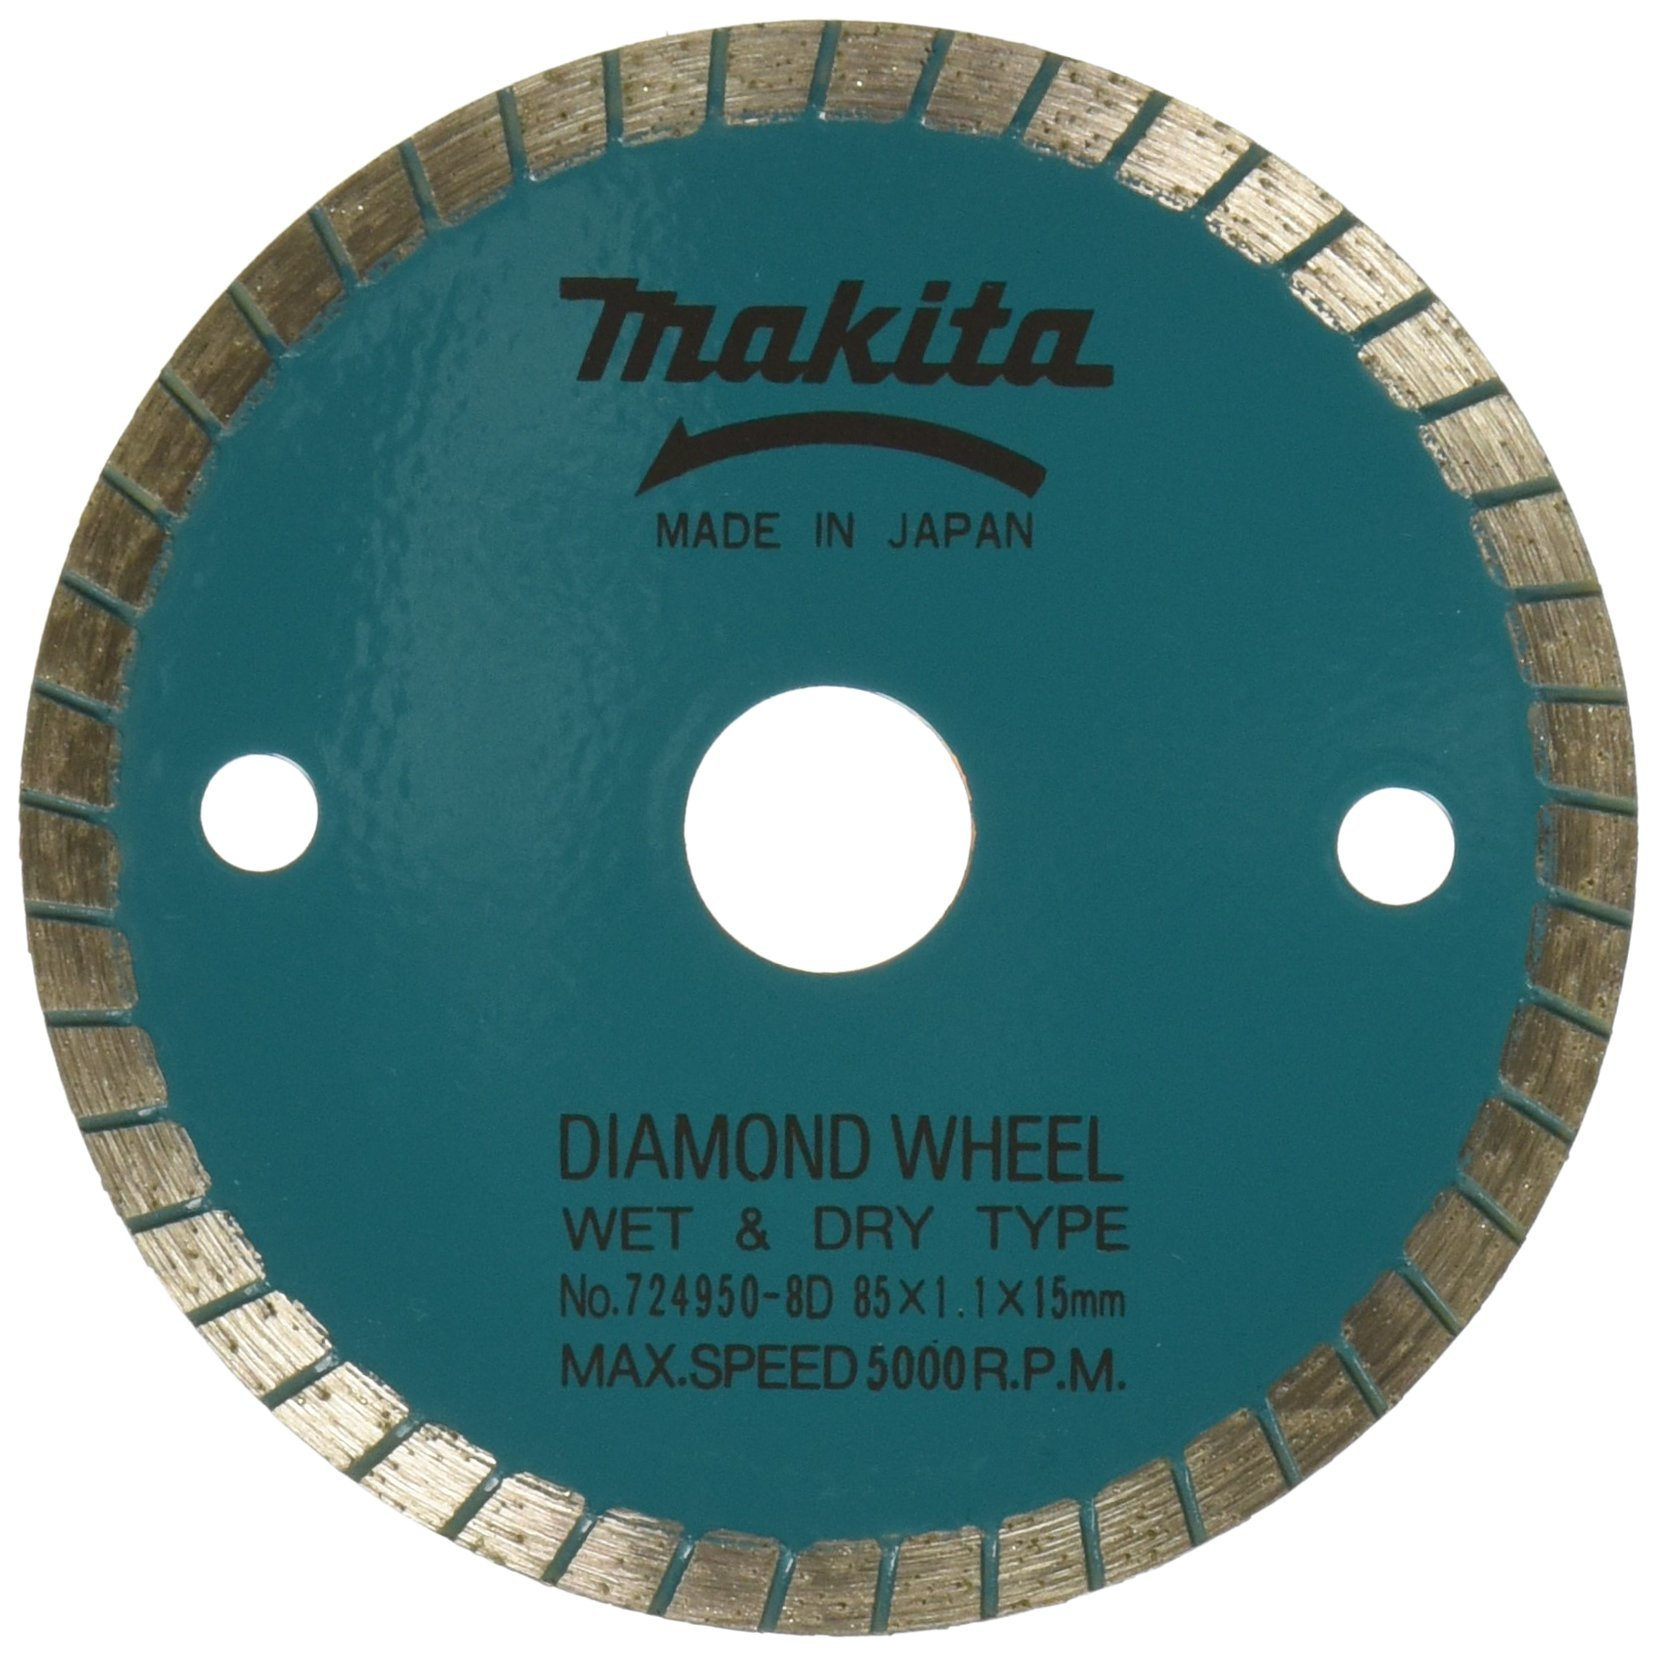 Makita 724950-8D 3-3/8-Inch Wet Cutting Diamond Saw Blade with 15-Millimeter Arbor for Cutting Stone or Masonry